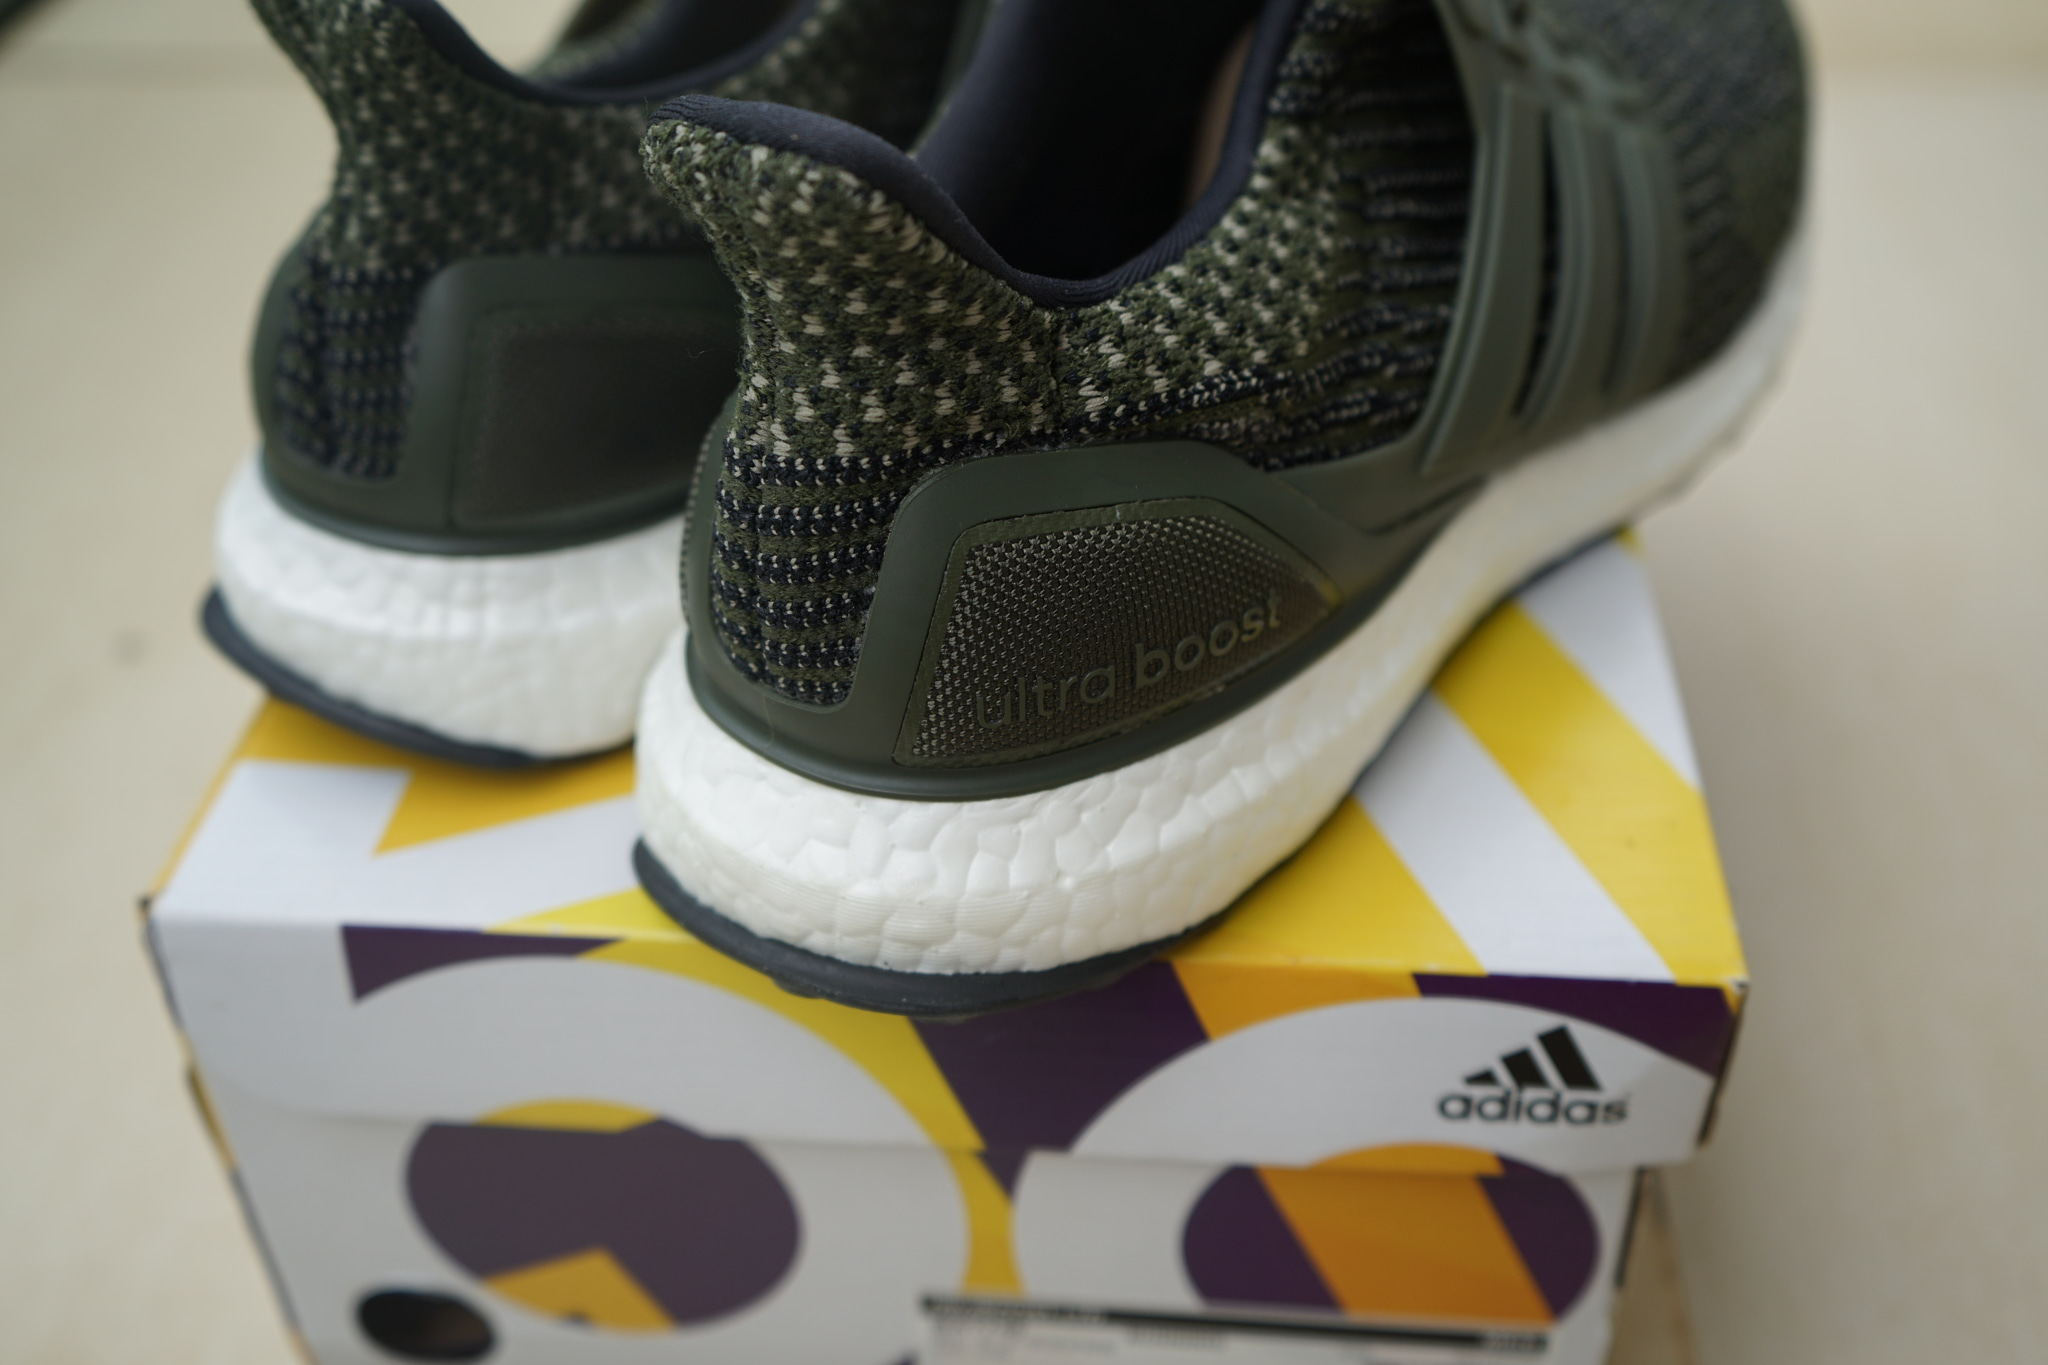 Adidas Ultra Boost LTD 3.0 Trace Cargo (# 1075091) from ChiOne at